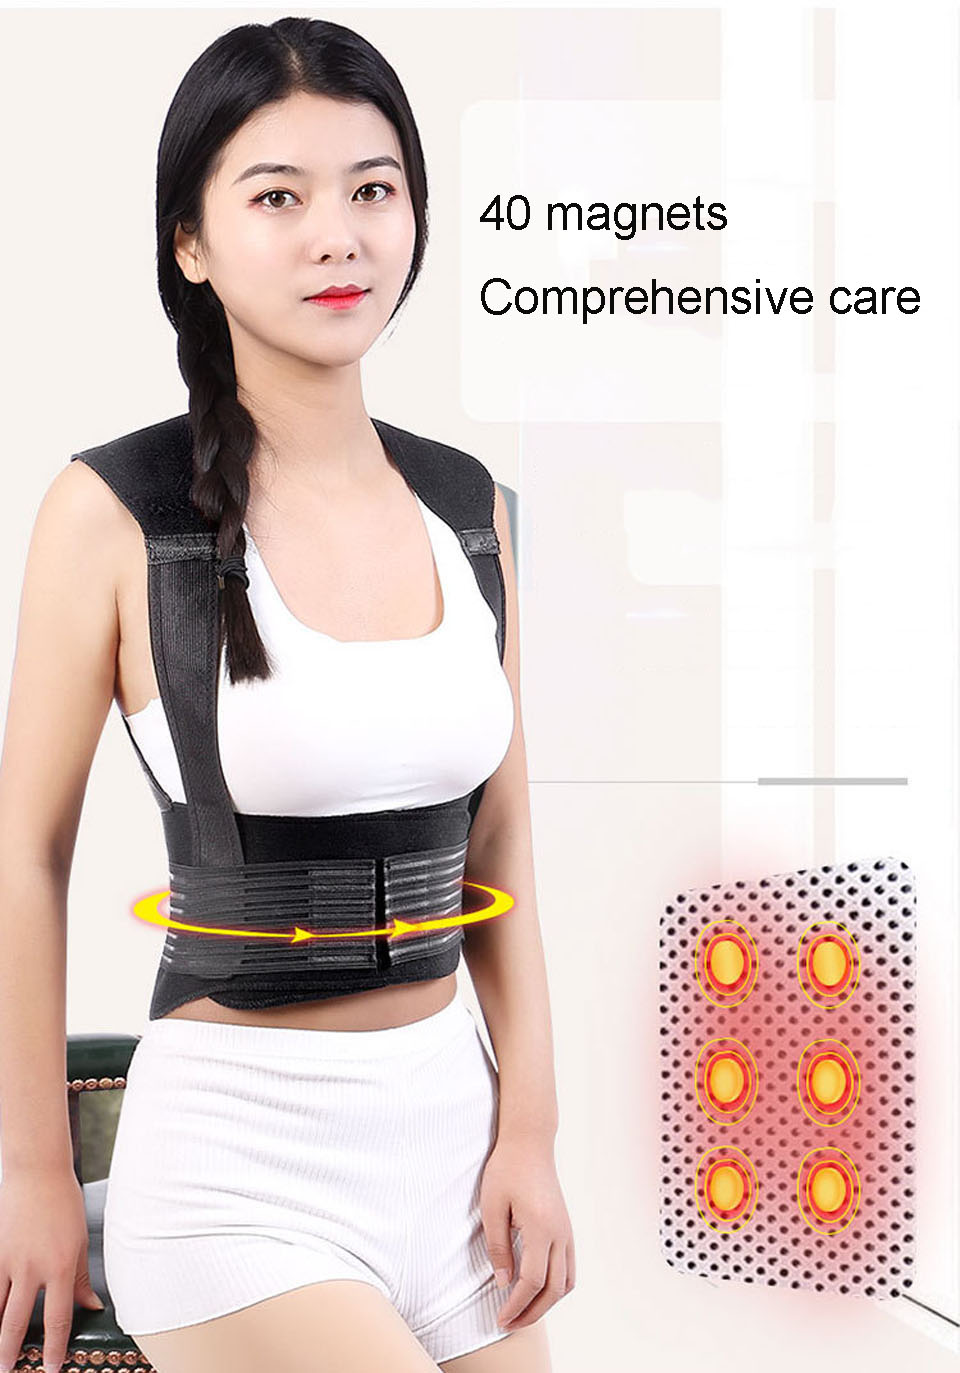 Tourmaline Self Heating Posture Corrector Belt with Nano Infrared Acupuncture Dot Matrix  to Support Spine and Shoulder Helps to Relieve Pain in Back and Joints 11